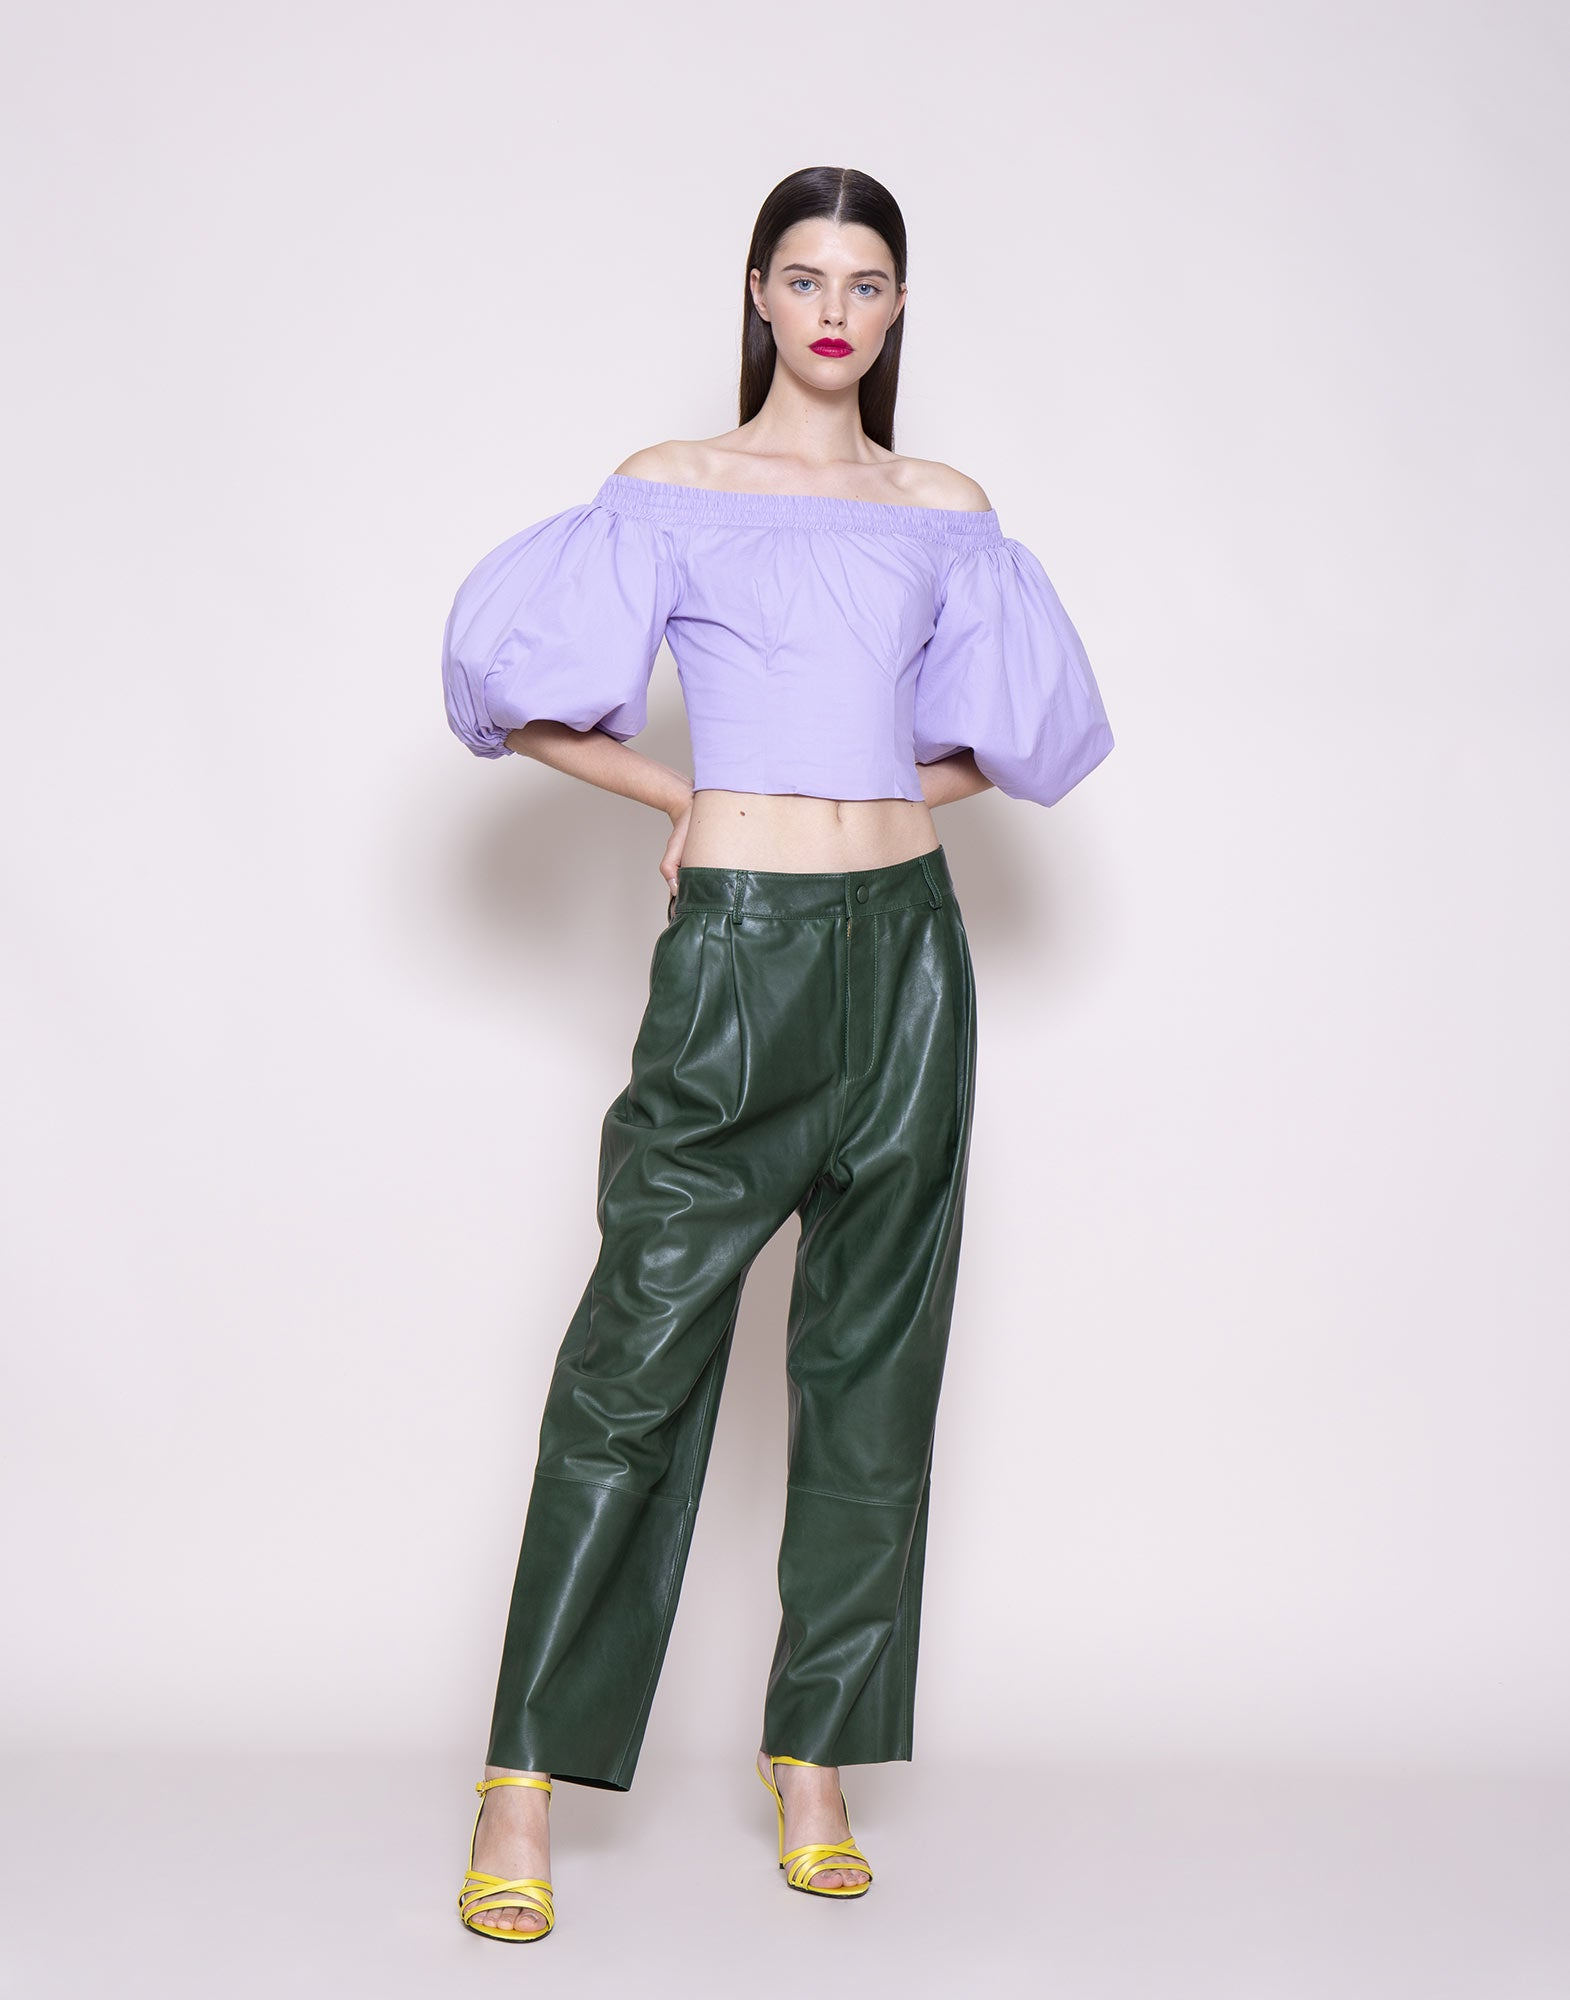 Green leather trousers